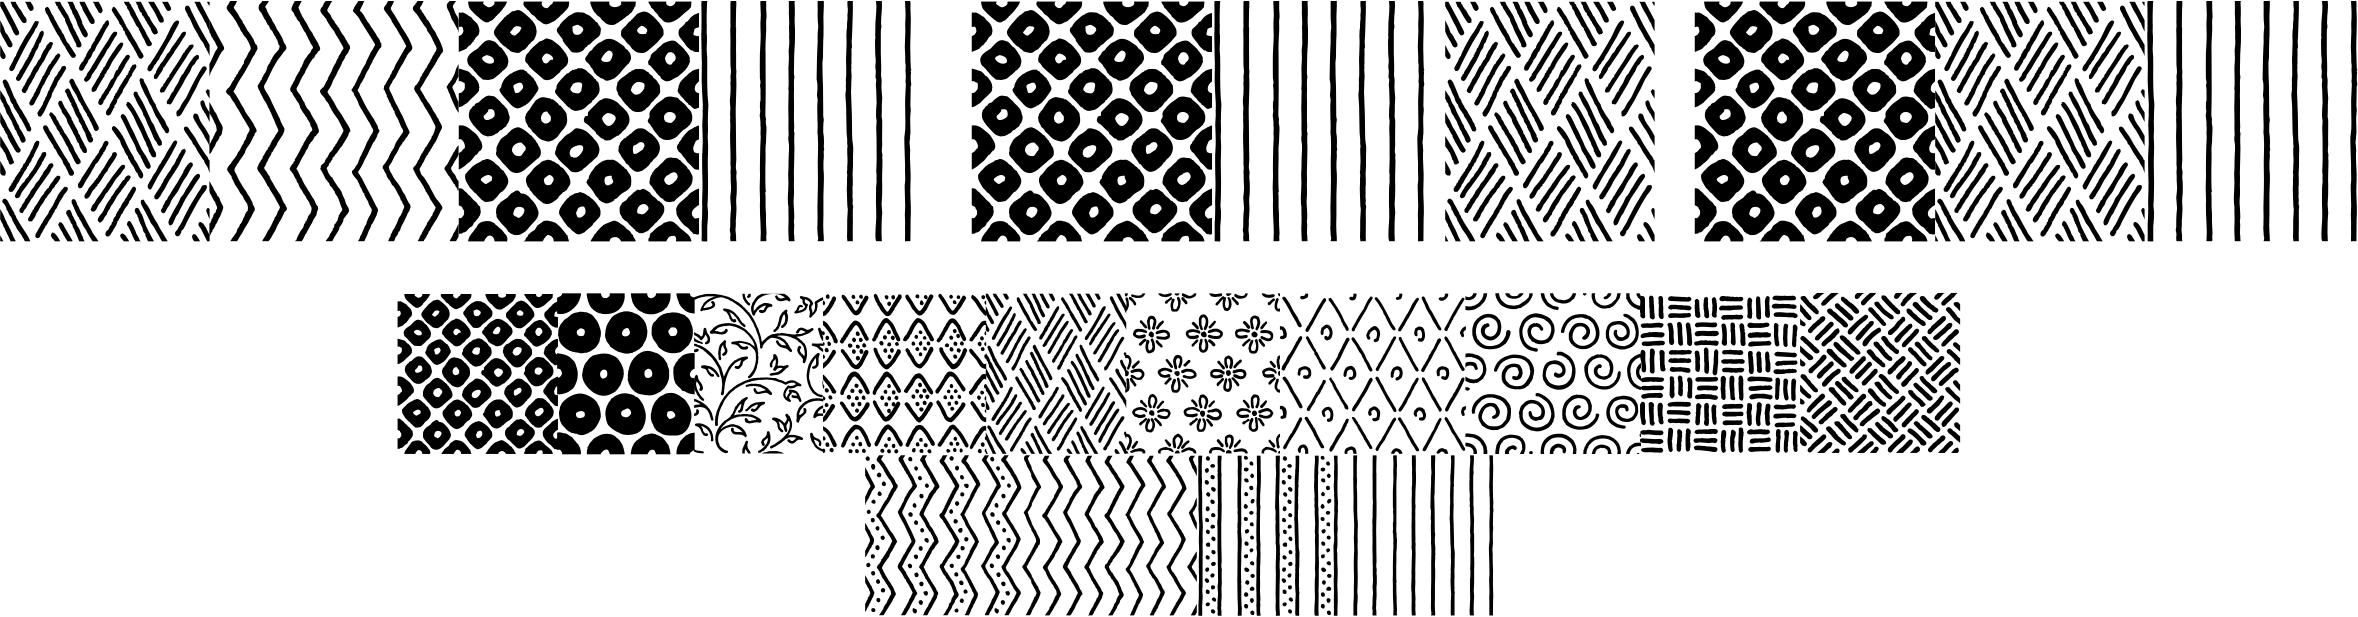 Melany Lane Patterns